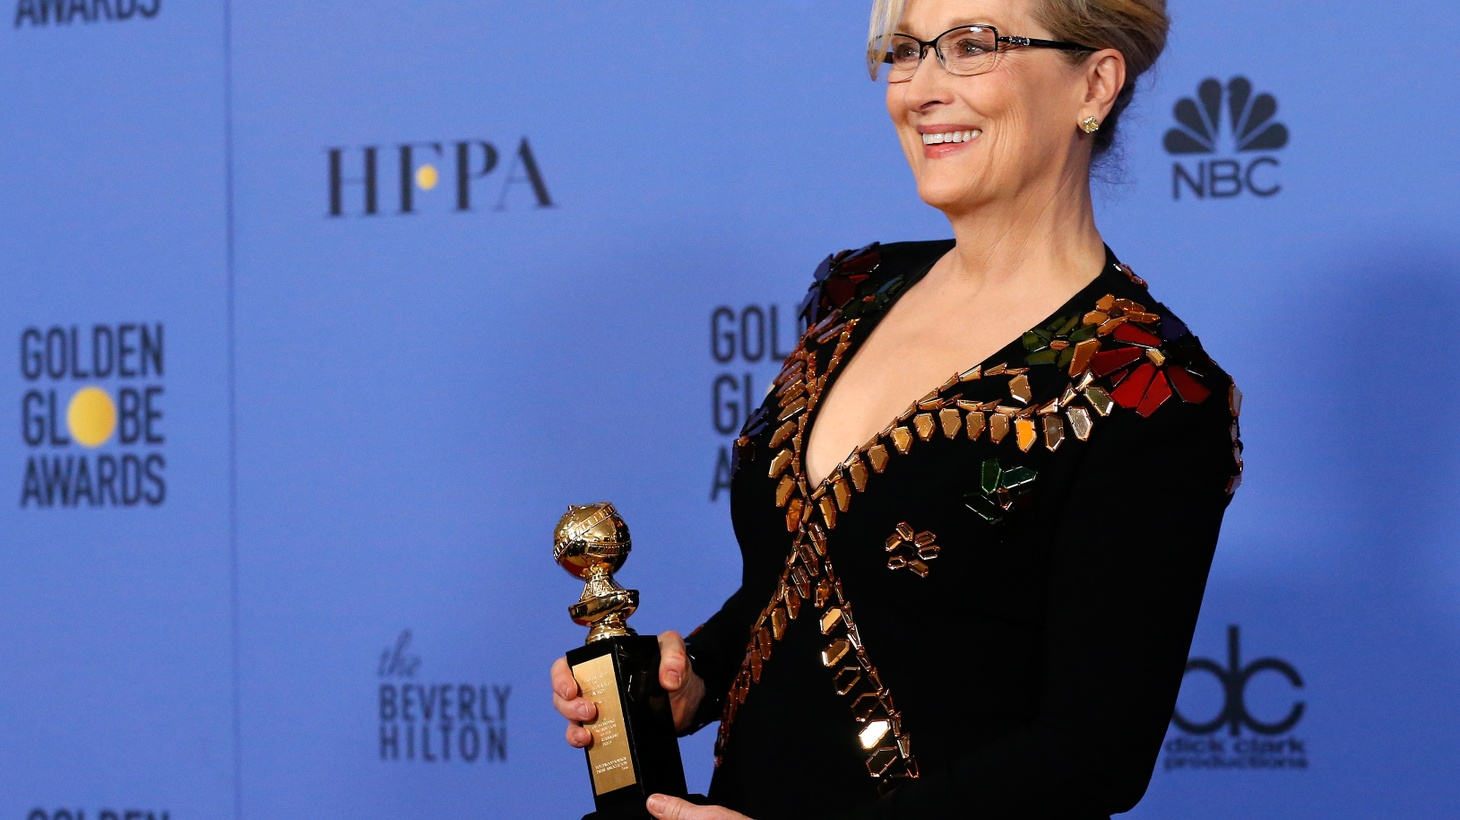 We look at last night's Golden Globes -- the awards, speeches, and whether they reflect America. We also look at whether Donald Trump has kept good on his promise to make America great again by bringing back manufacturing jobs.